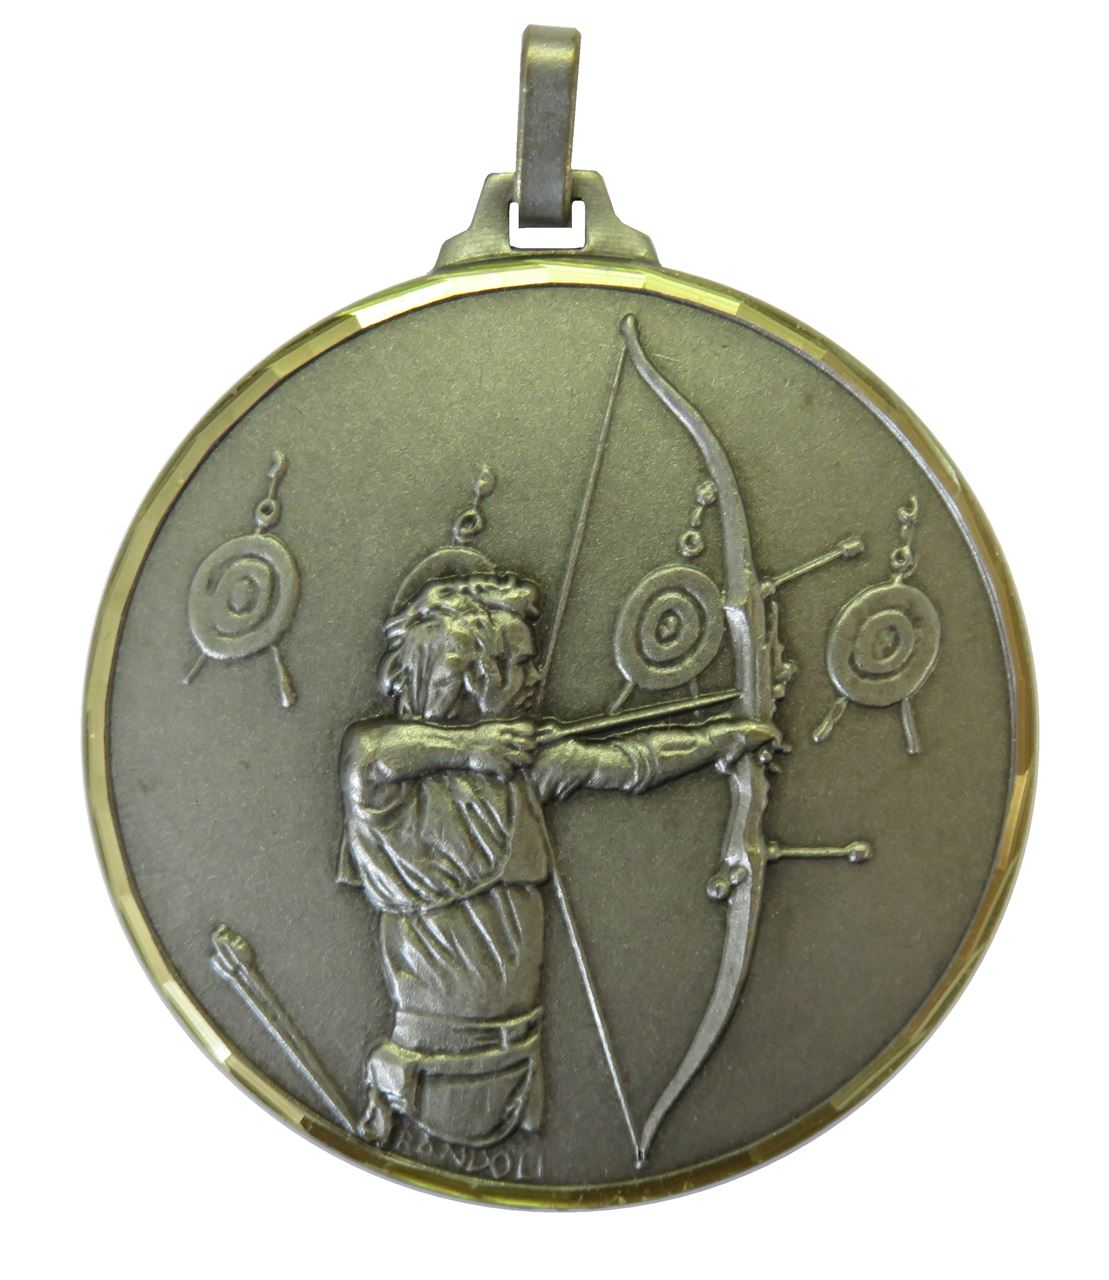 Silver Faceted Archery Medal (size: 52mm) - 337/52S